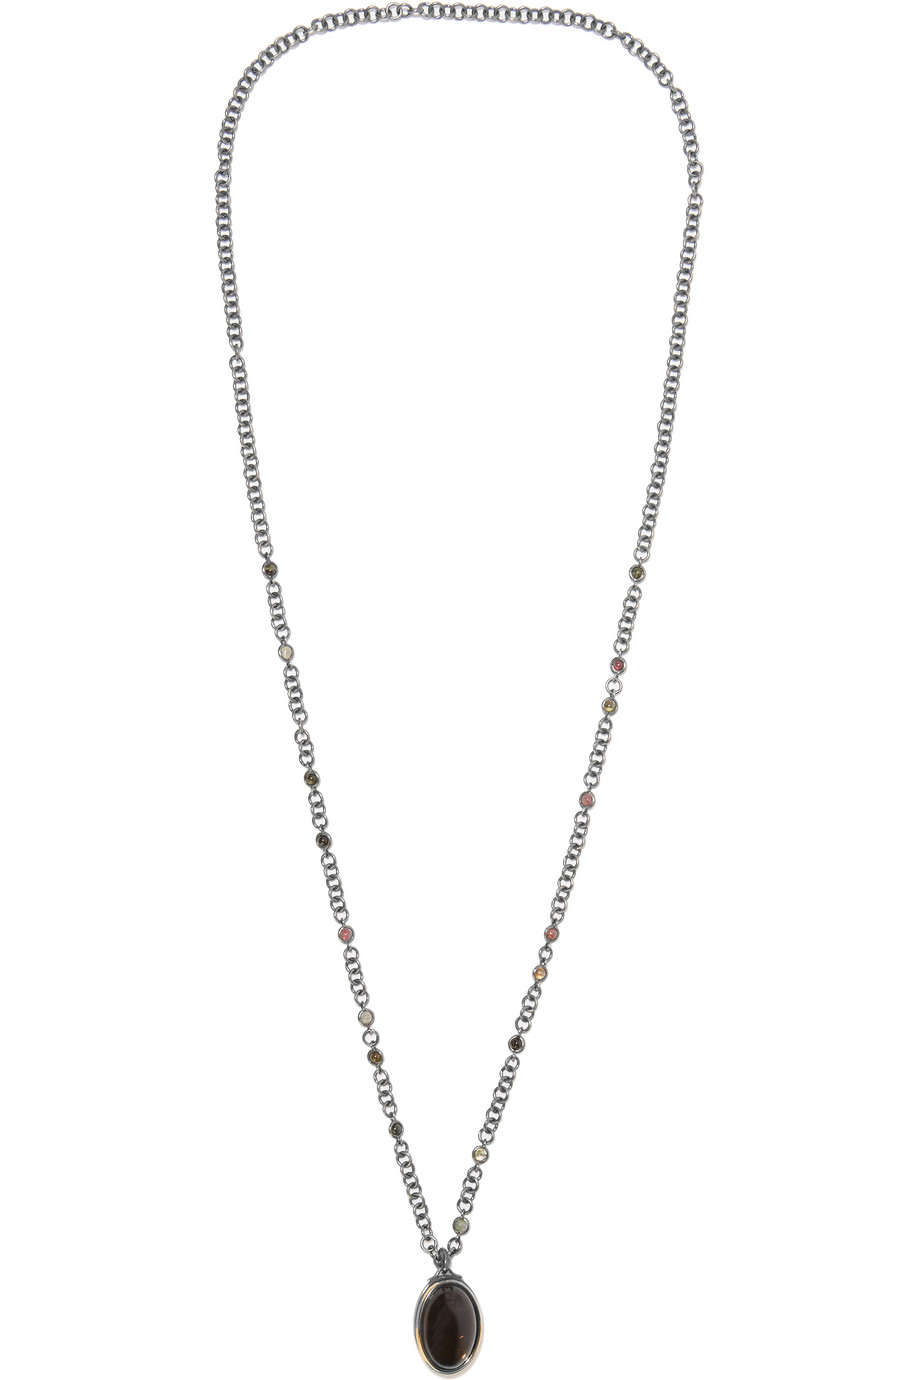 Bottega Veneta Oxidized Sterling Silver Tourmaline Necklace, Silver/Dark Brown, Women's